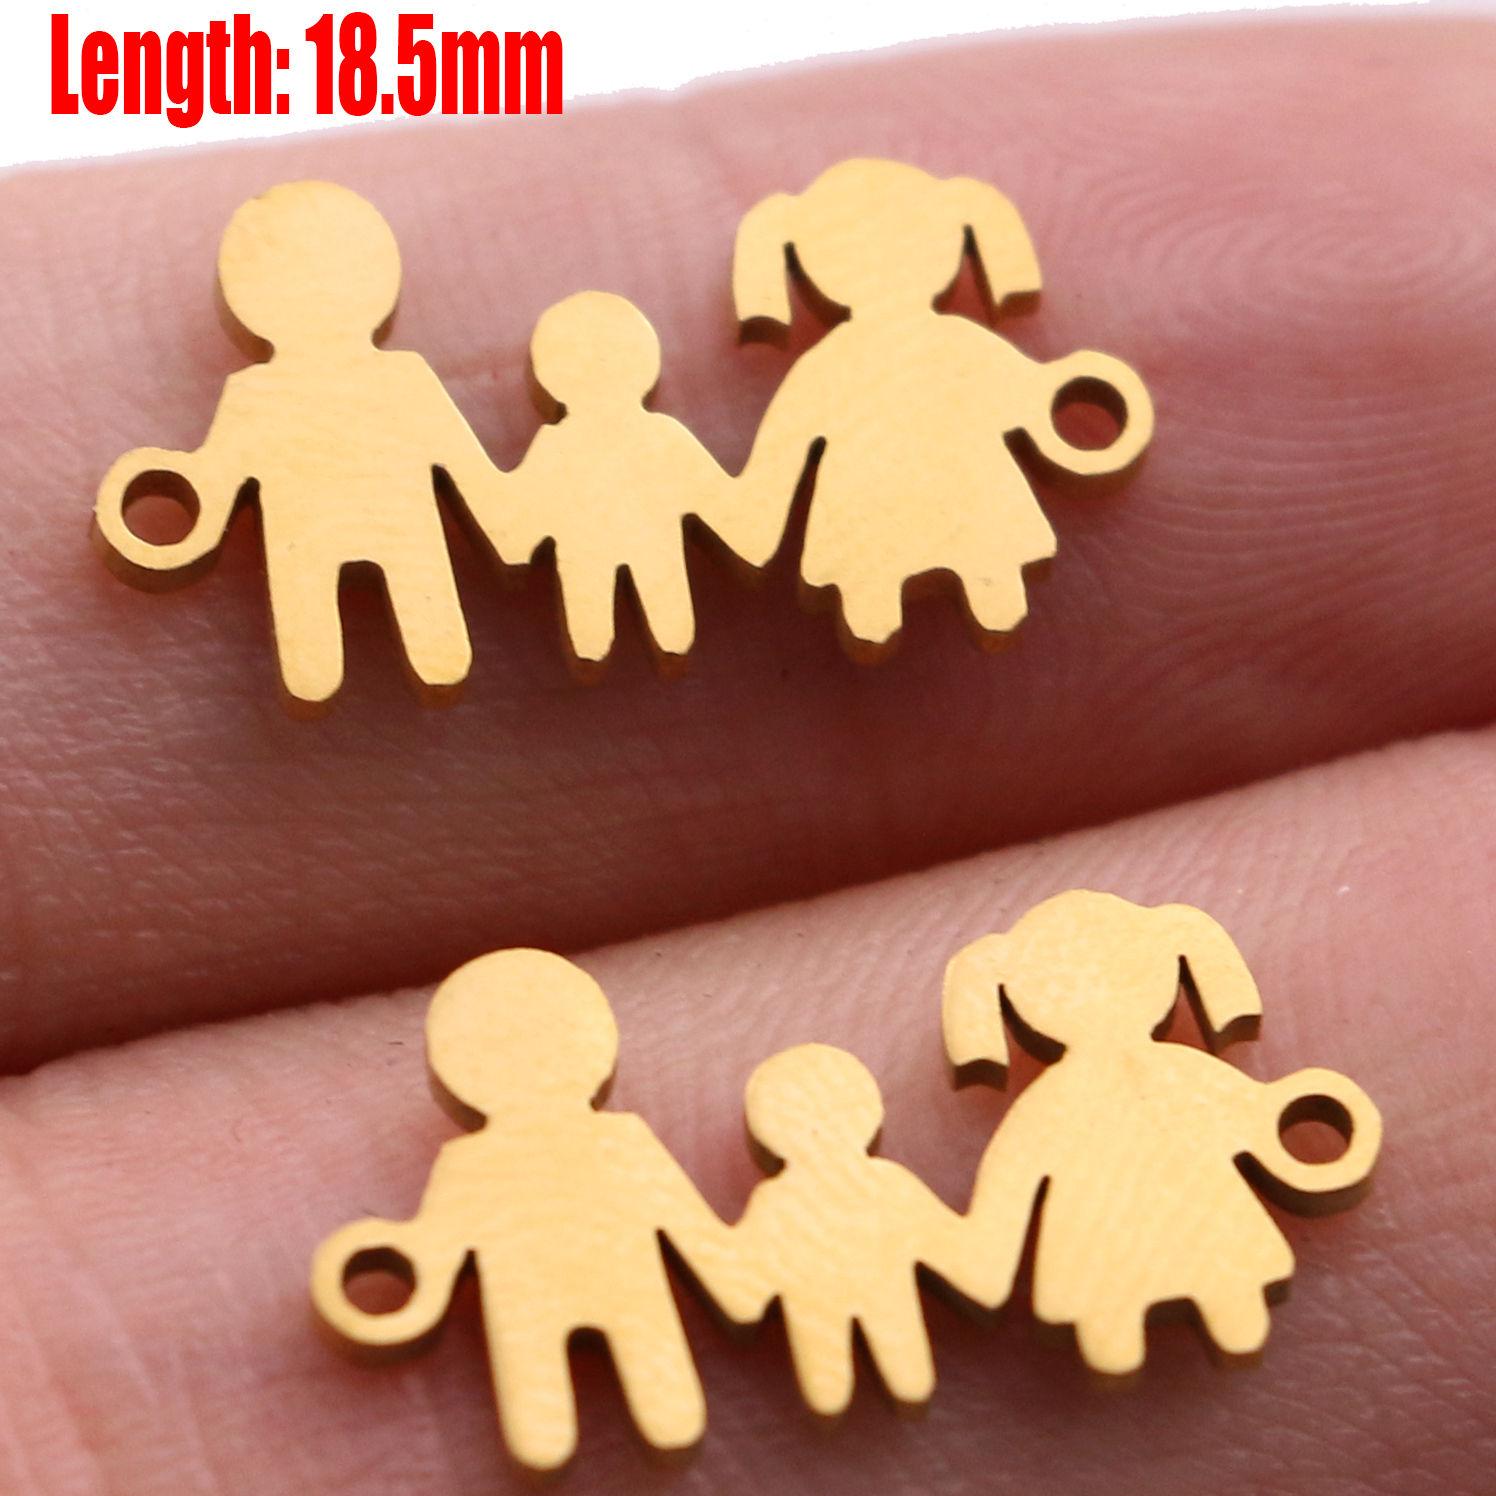 5pcs Family Chain Stainless Steel Pendant Necklace Parents and Children Necklaces Gold/steel Jewelry Gift for Mom Dad New Twice - Цвет: Gold 33